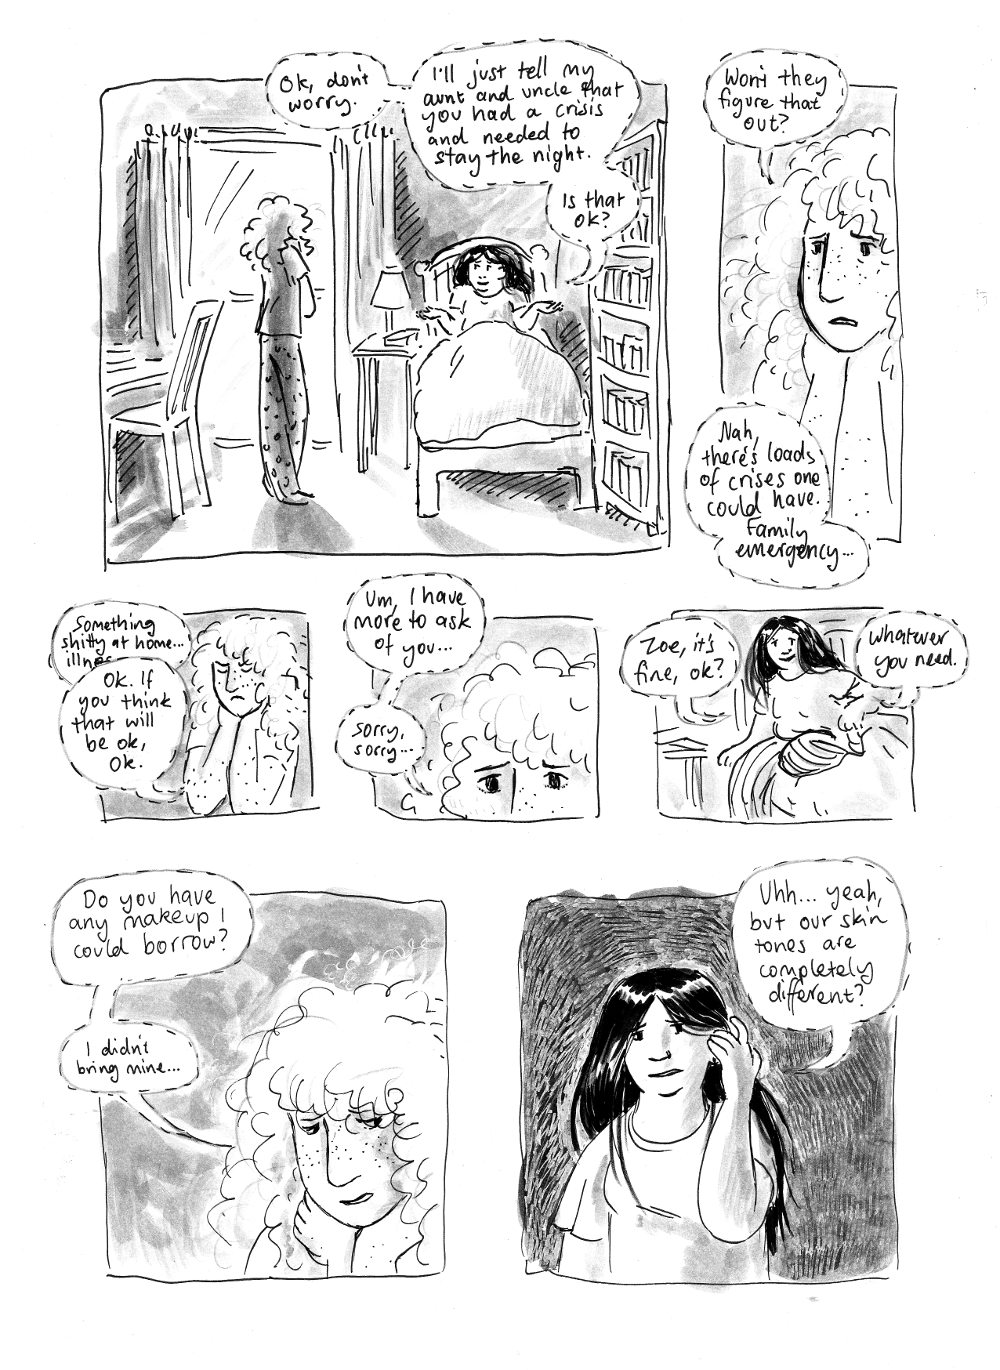 again... this comic is in black and white...